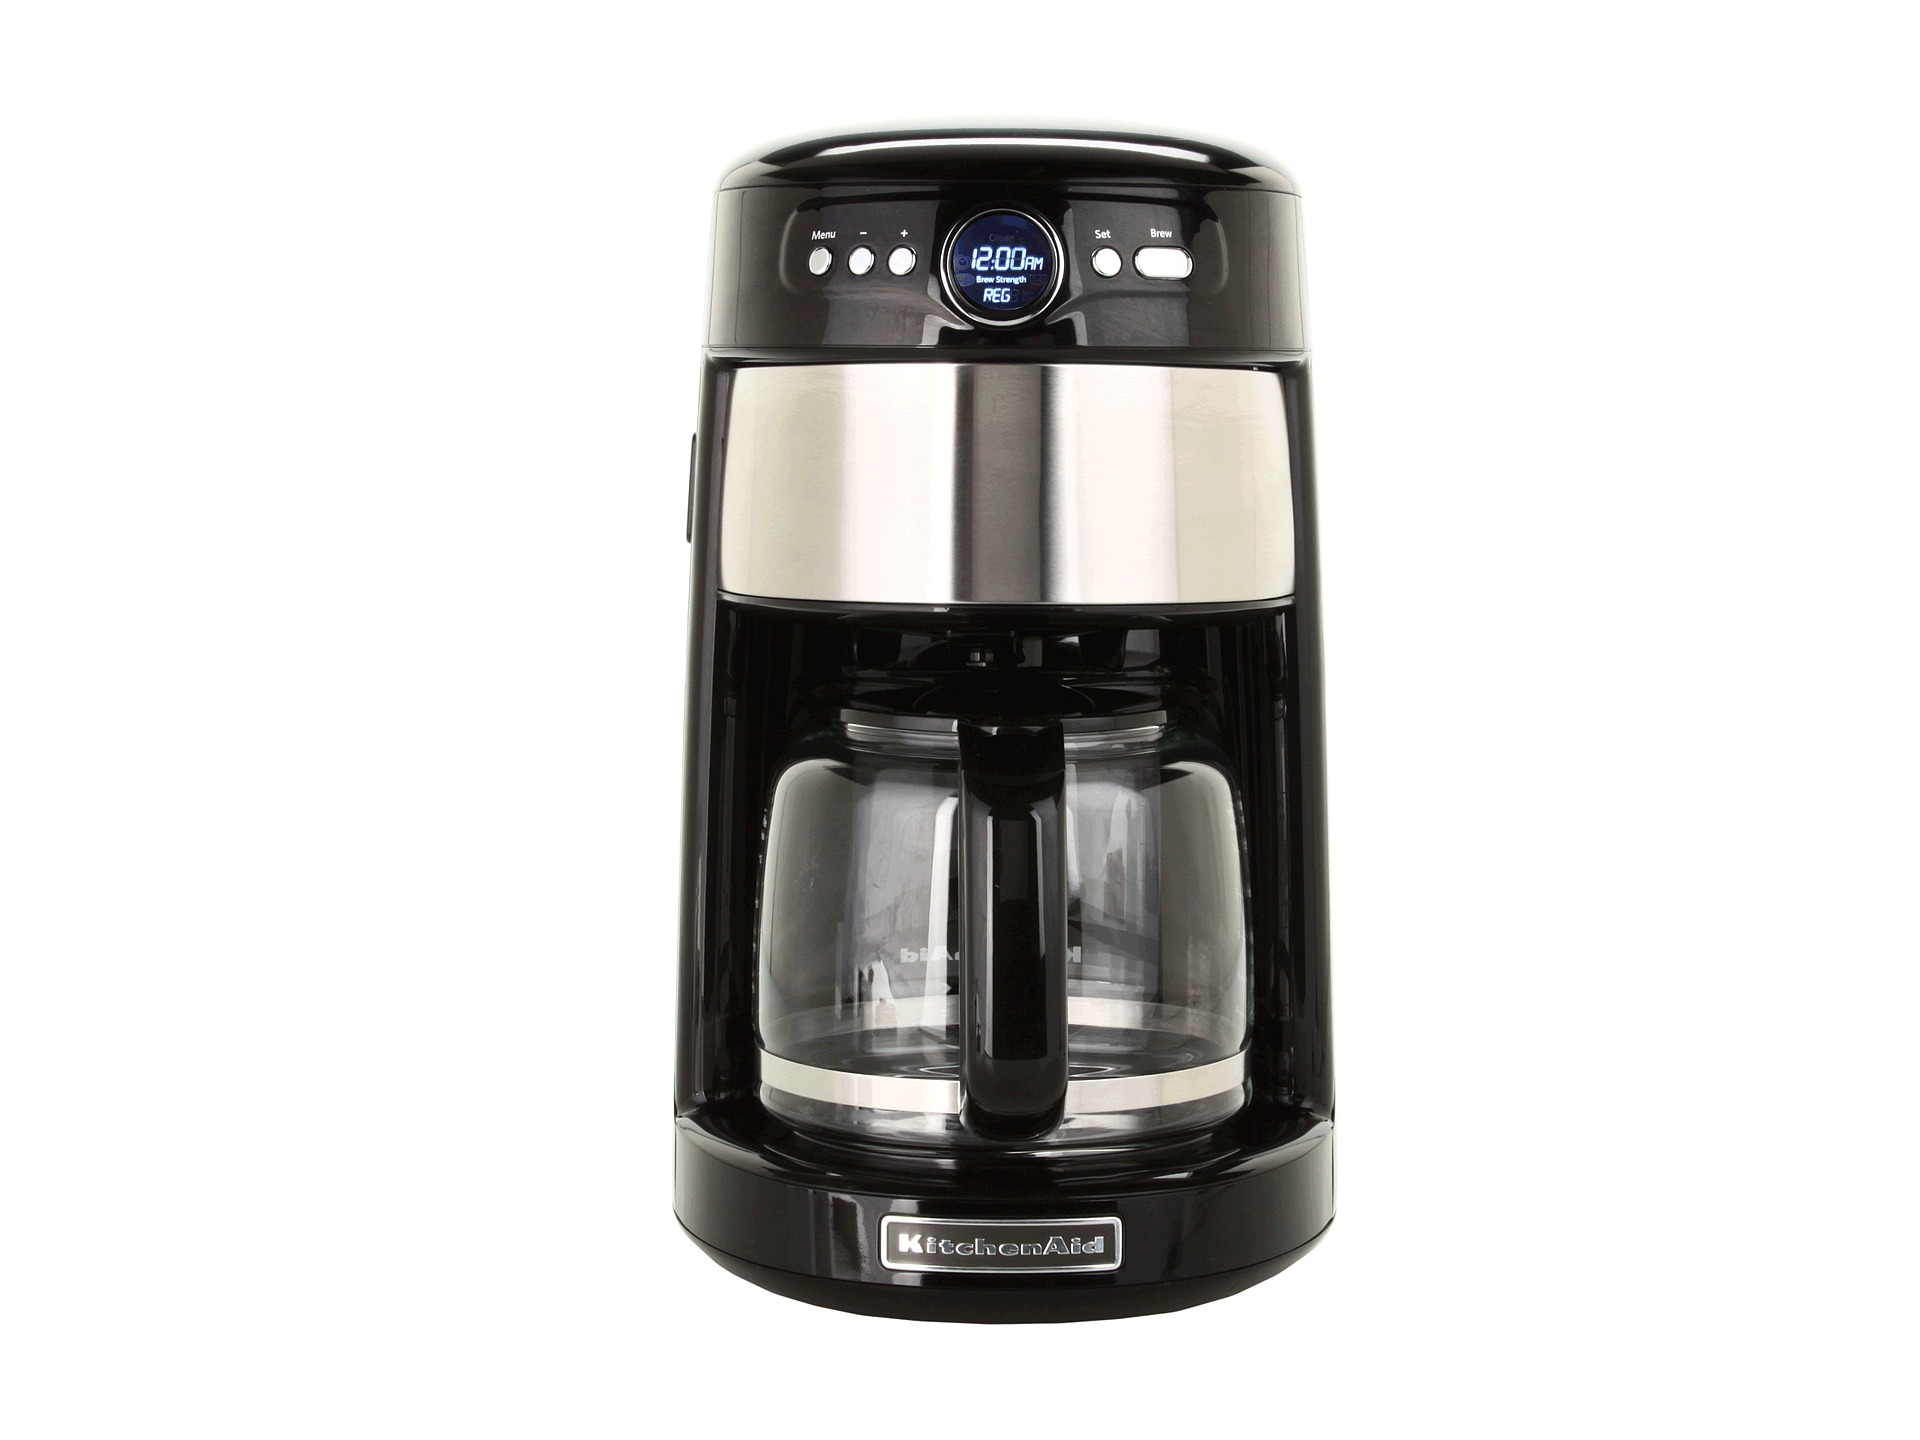 Coffee Maker On Clearance : Kitchenaid 14 Cup Glass Coffee Maker Shipped Free at Zappos